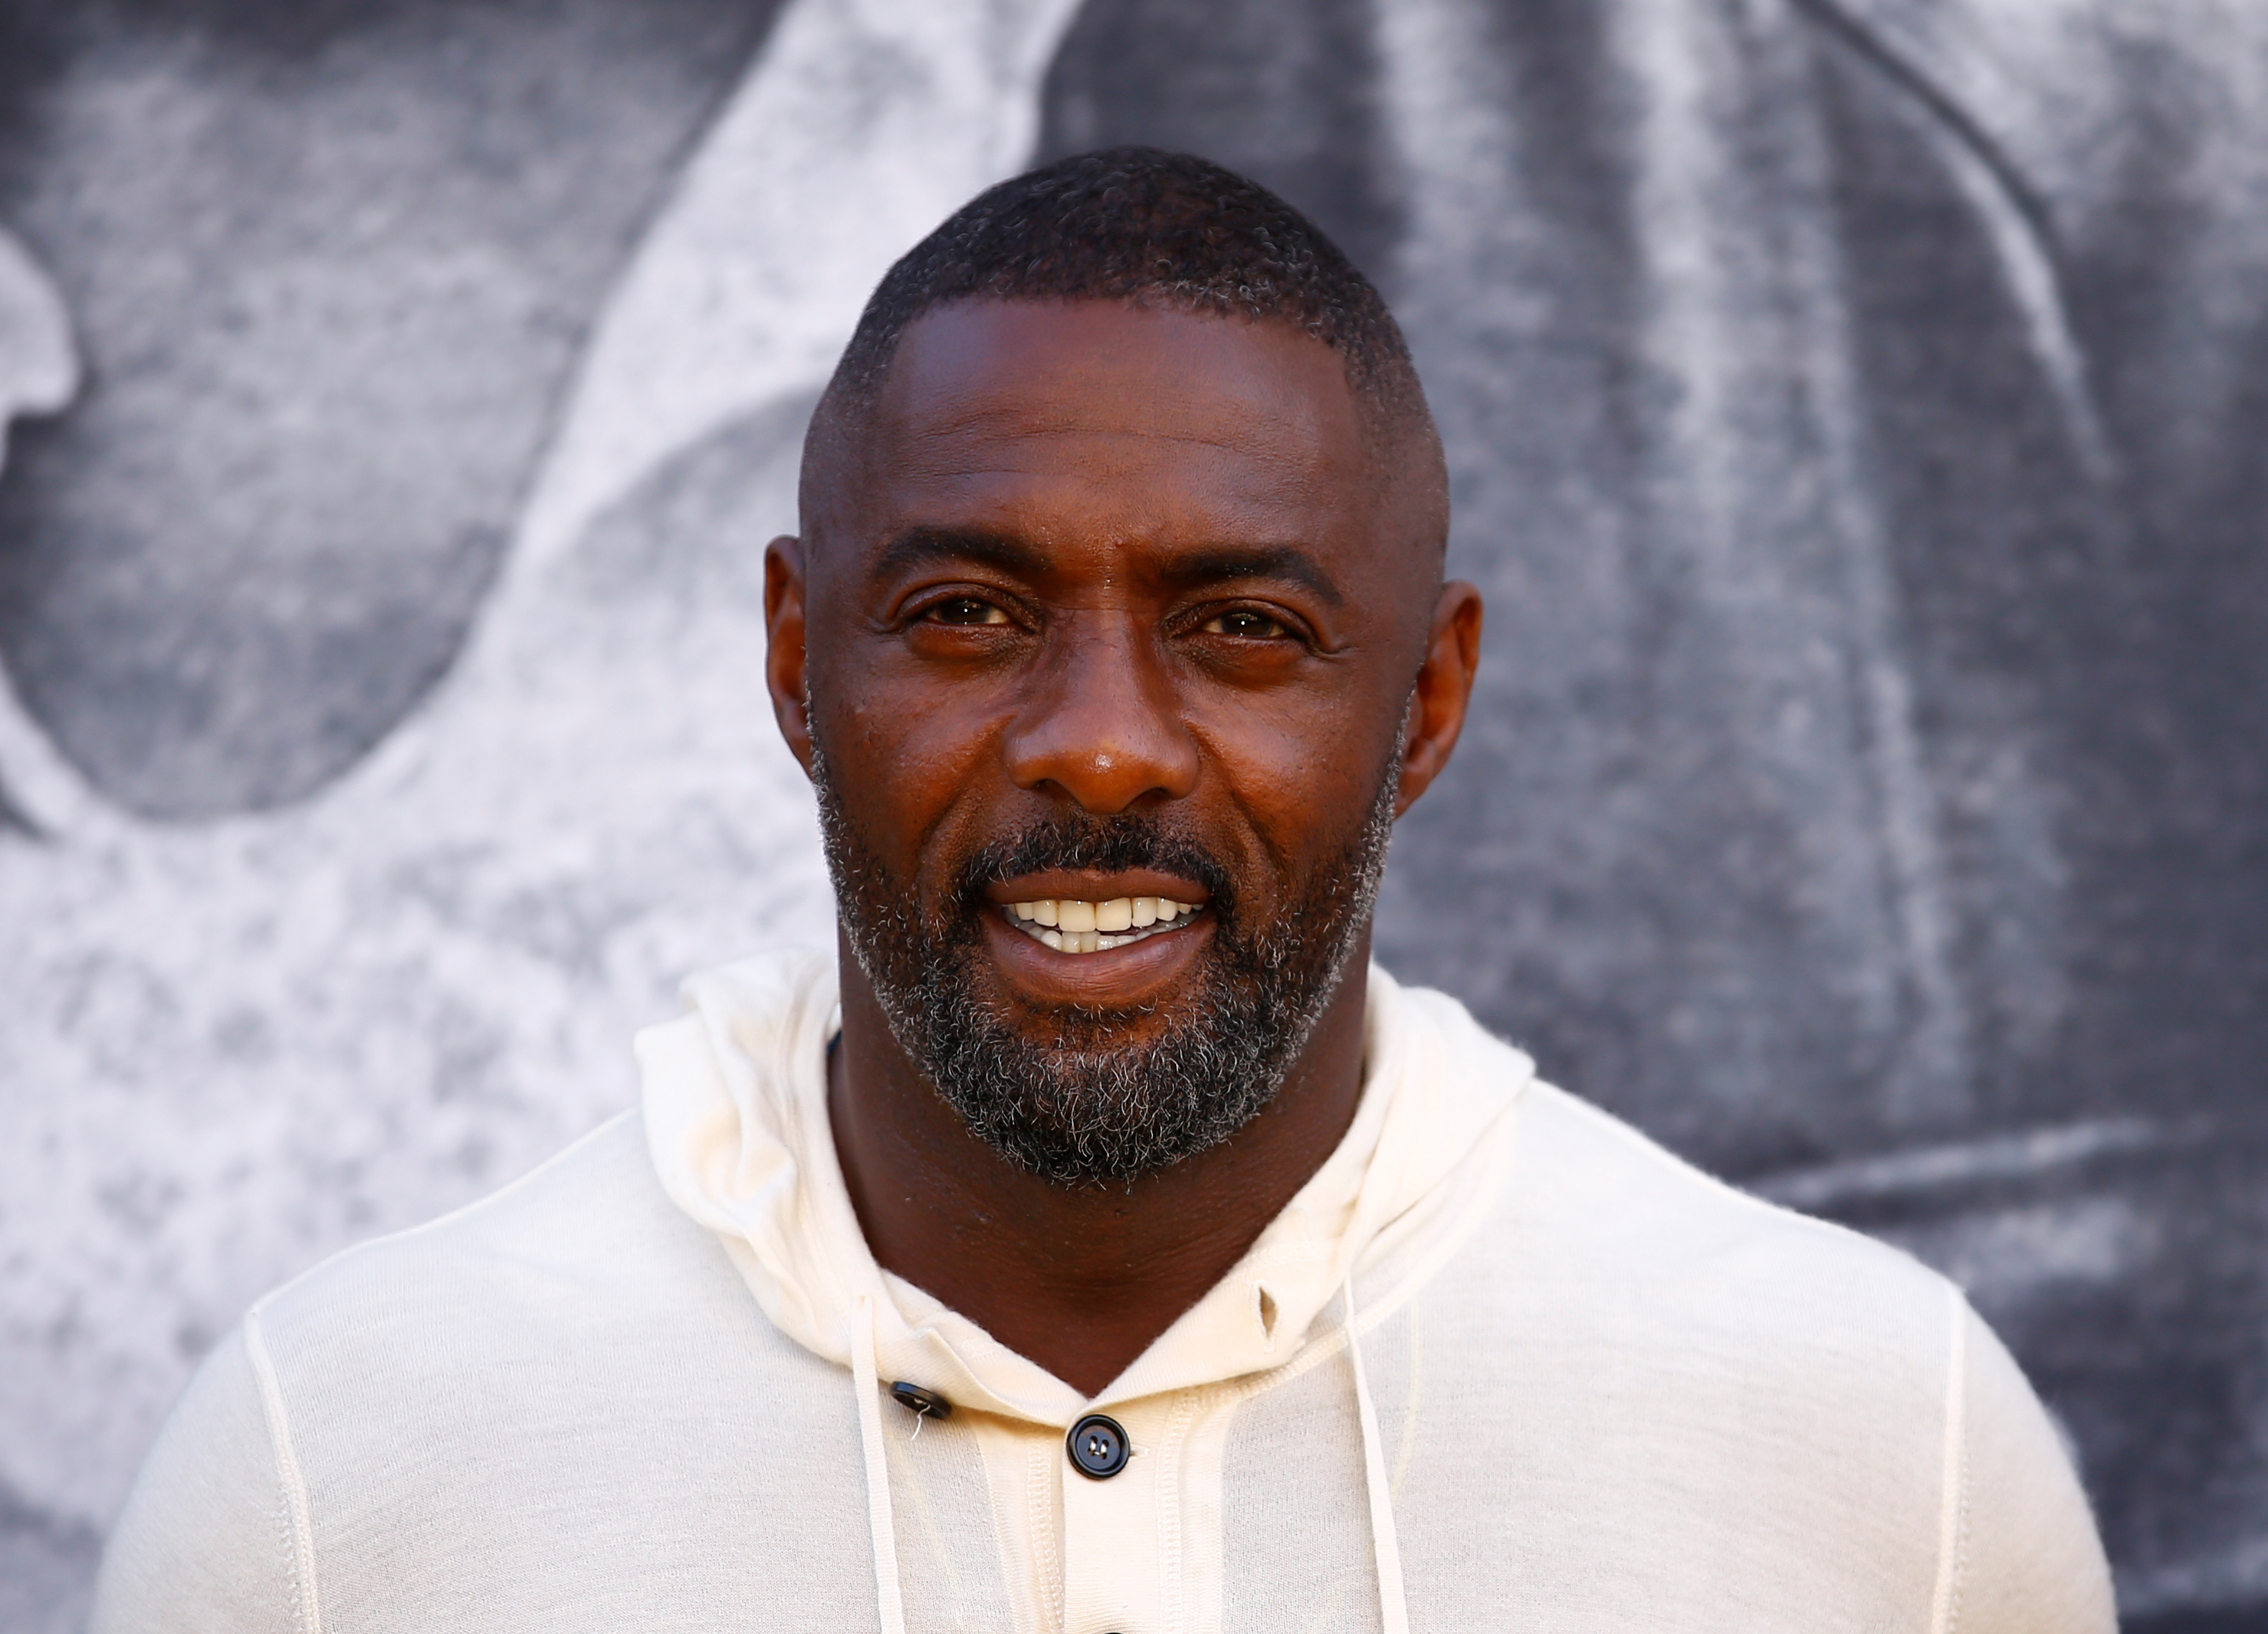 Idris Elba will play Knuckles in 'Sonic the Hedgehog 2'